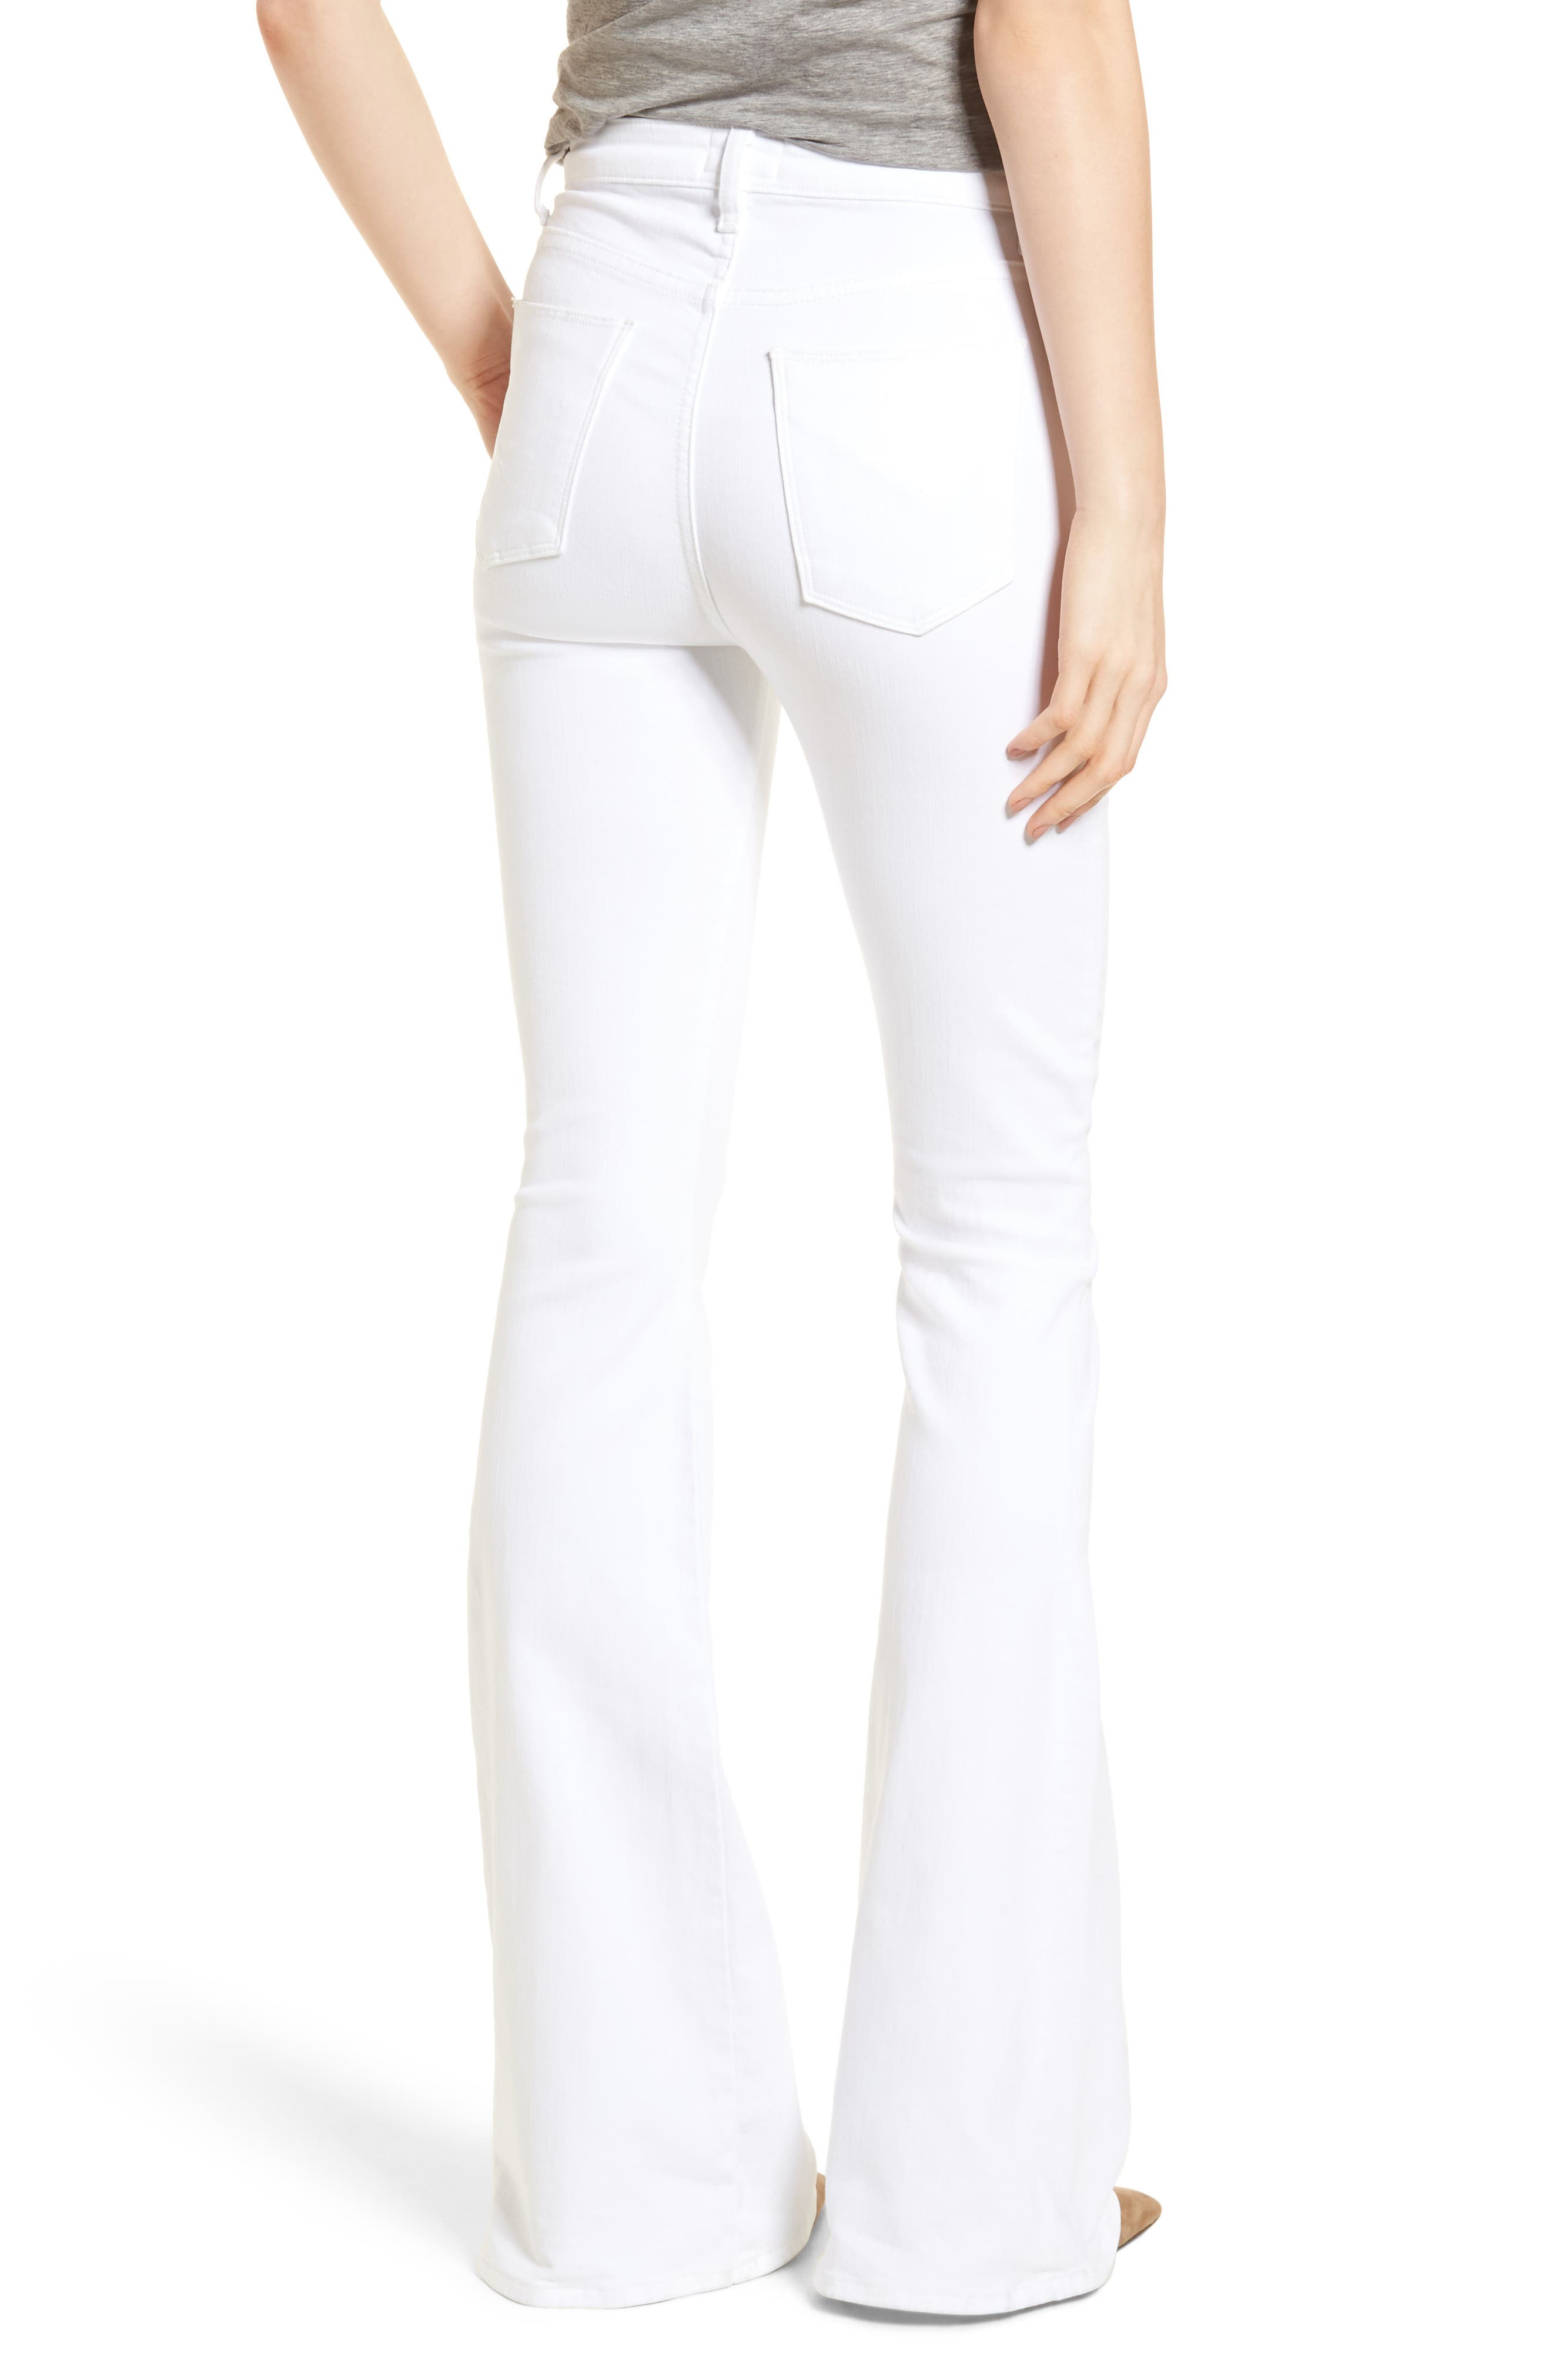 Holly High Waist Flare Jeans,                             Alternate thumbnail 2, color,                             Optical White